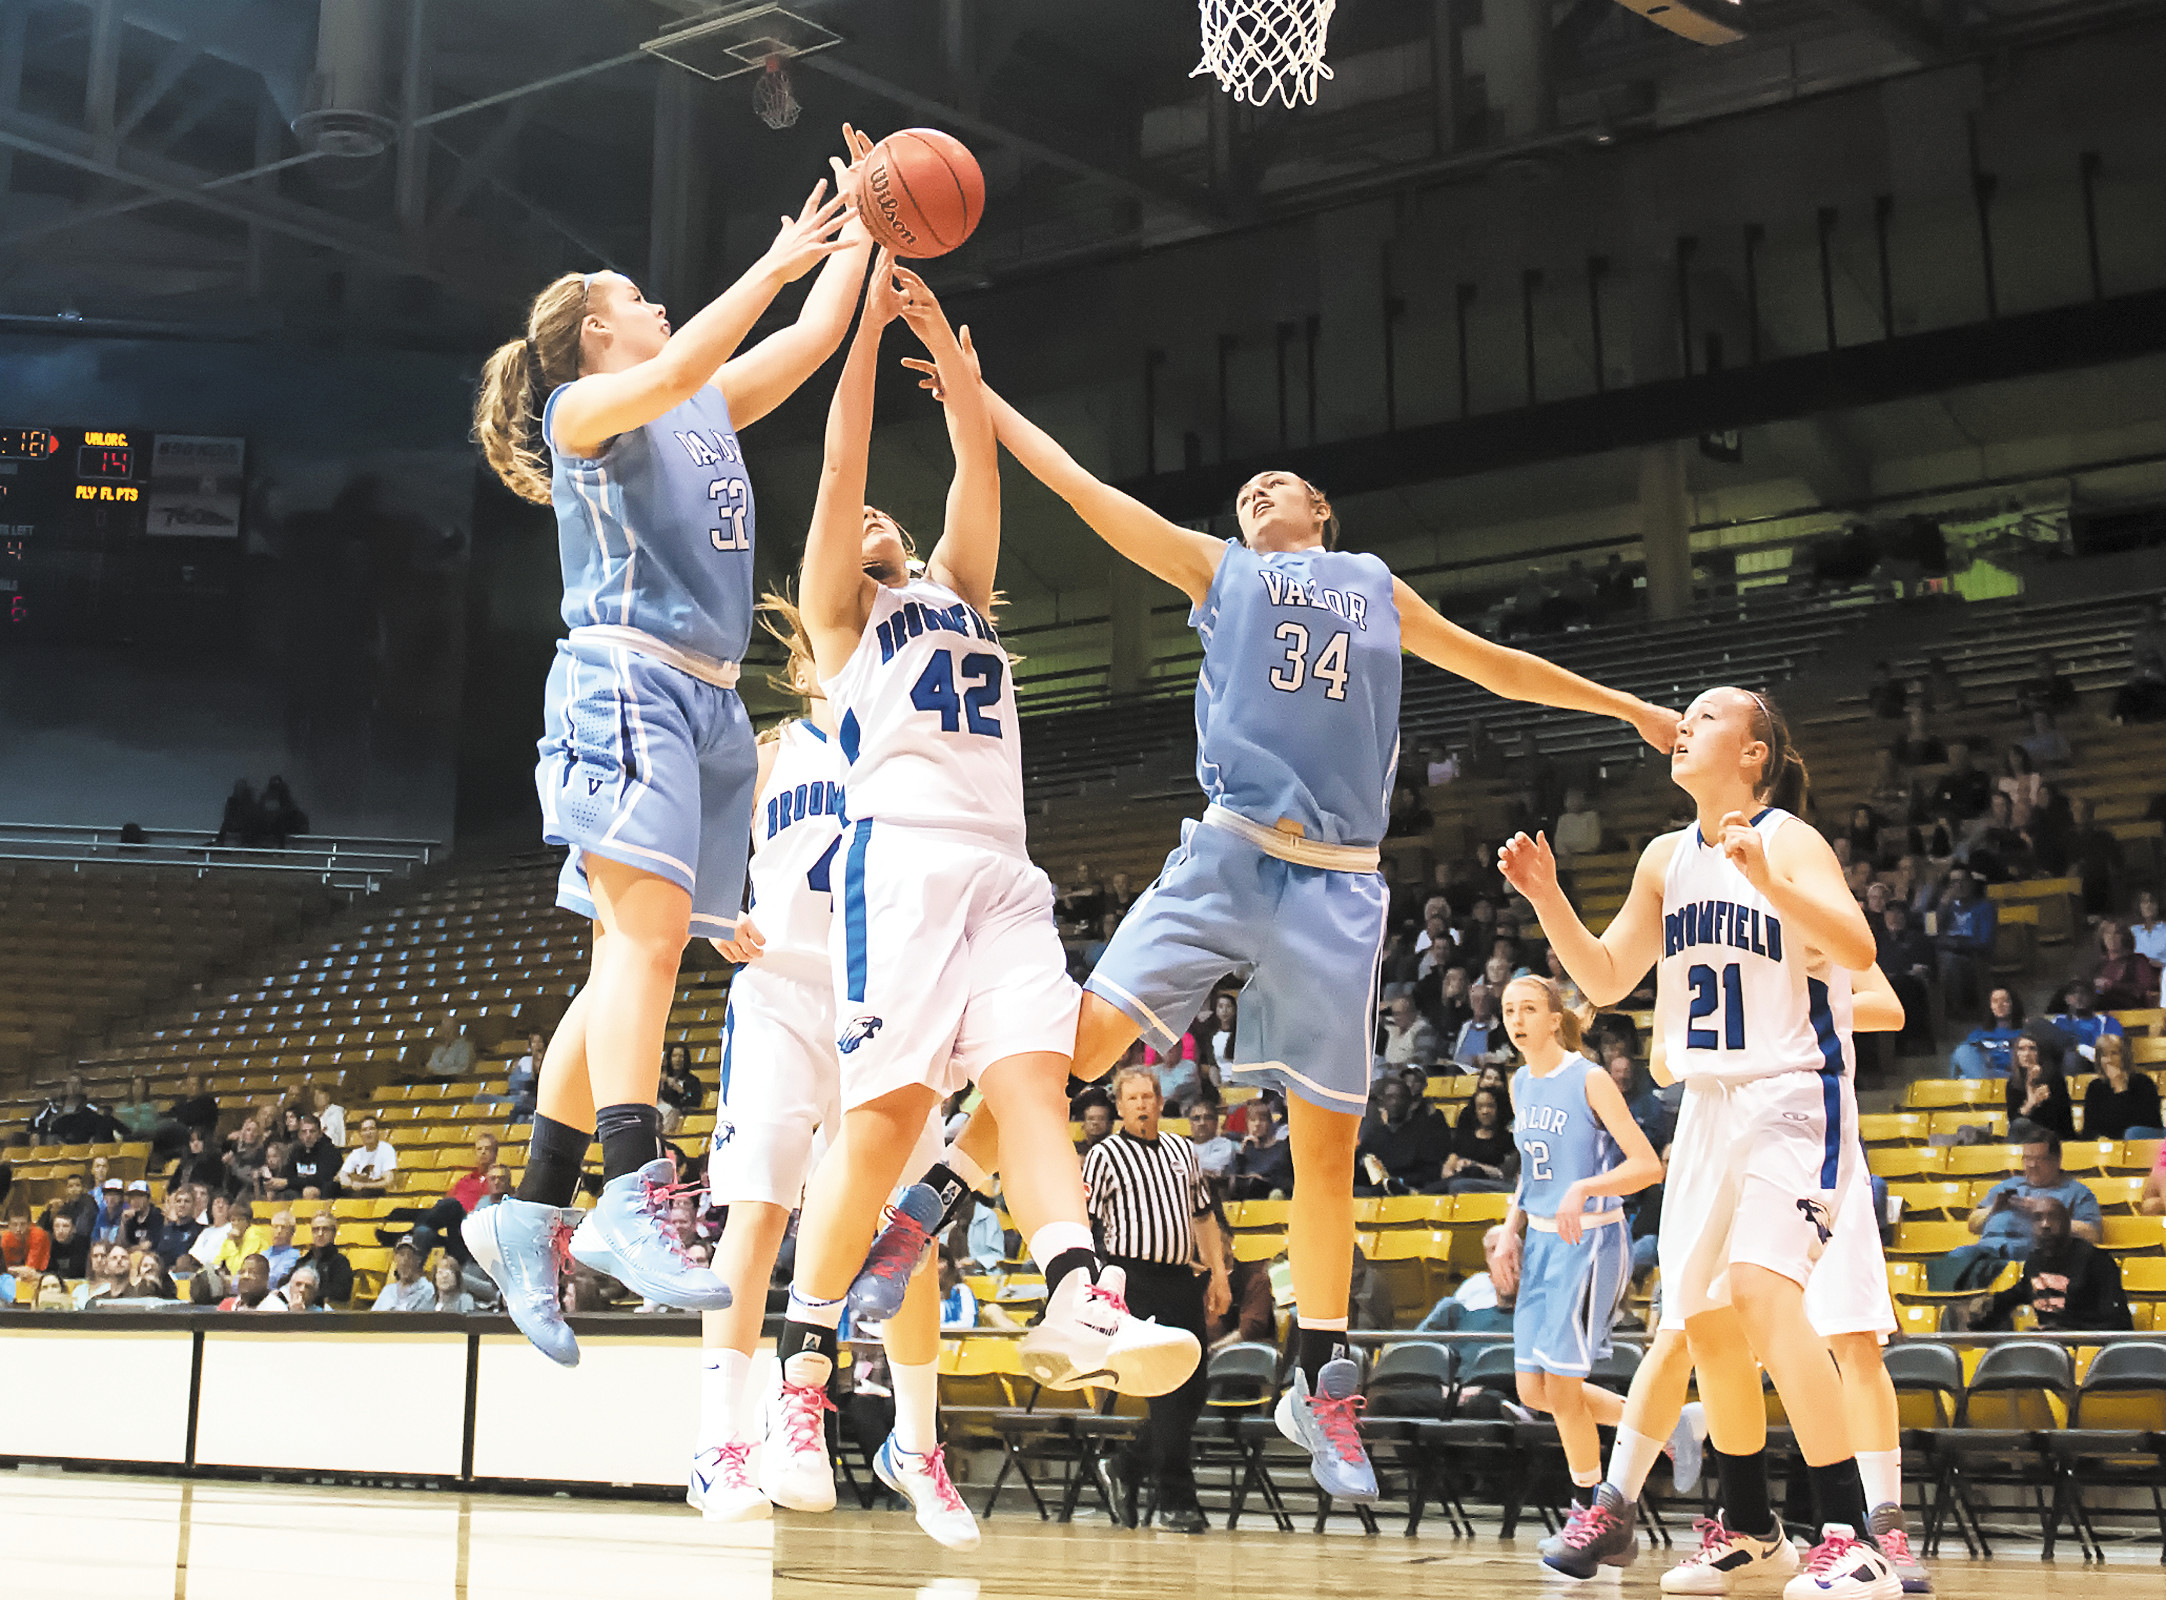 Valor Christian defenders Kendall Bradbury (32) and Kylie Rose (34) block a shot attempt from Broomfield's Stacie Hu